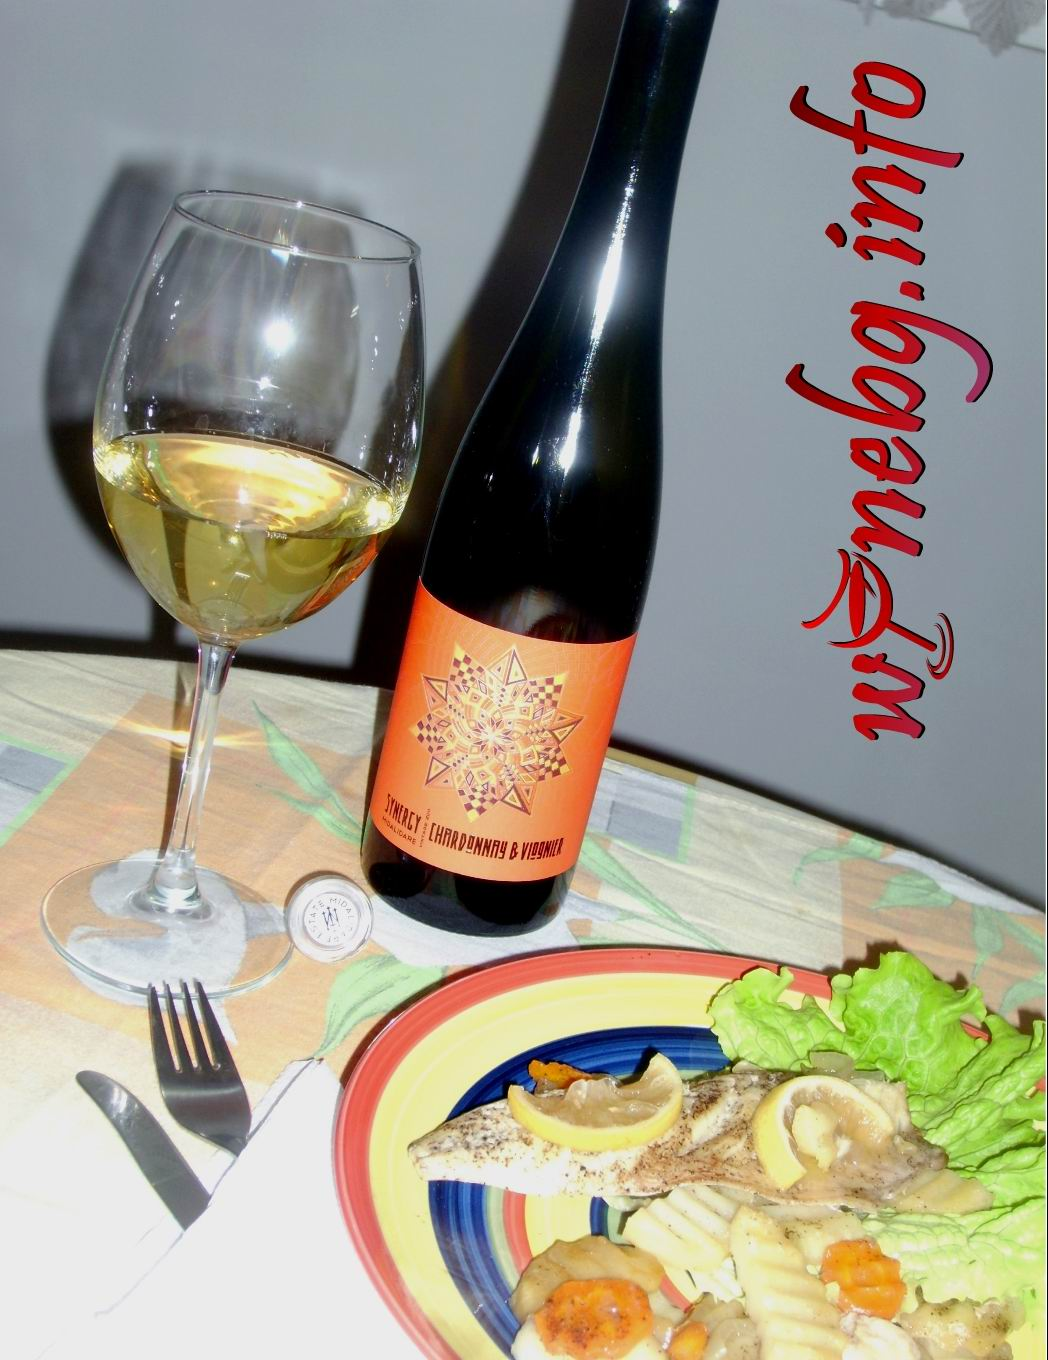 Synergy 2011 Charonnay & Viognier – Midalidare Estate